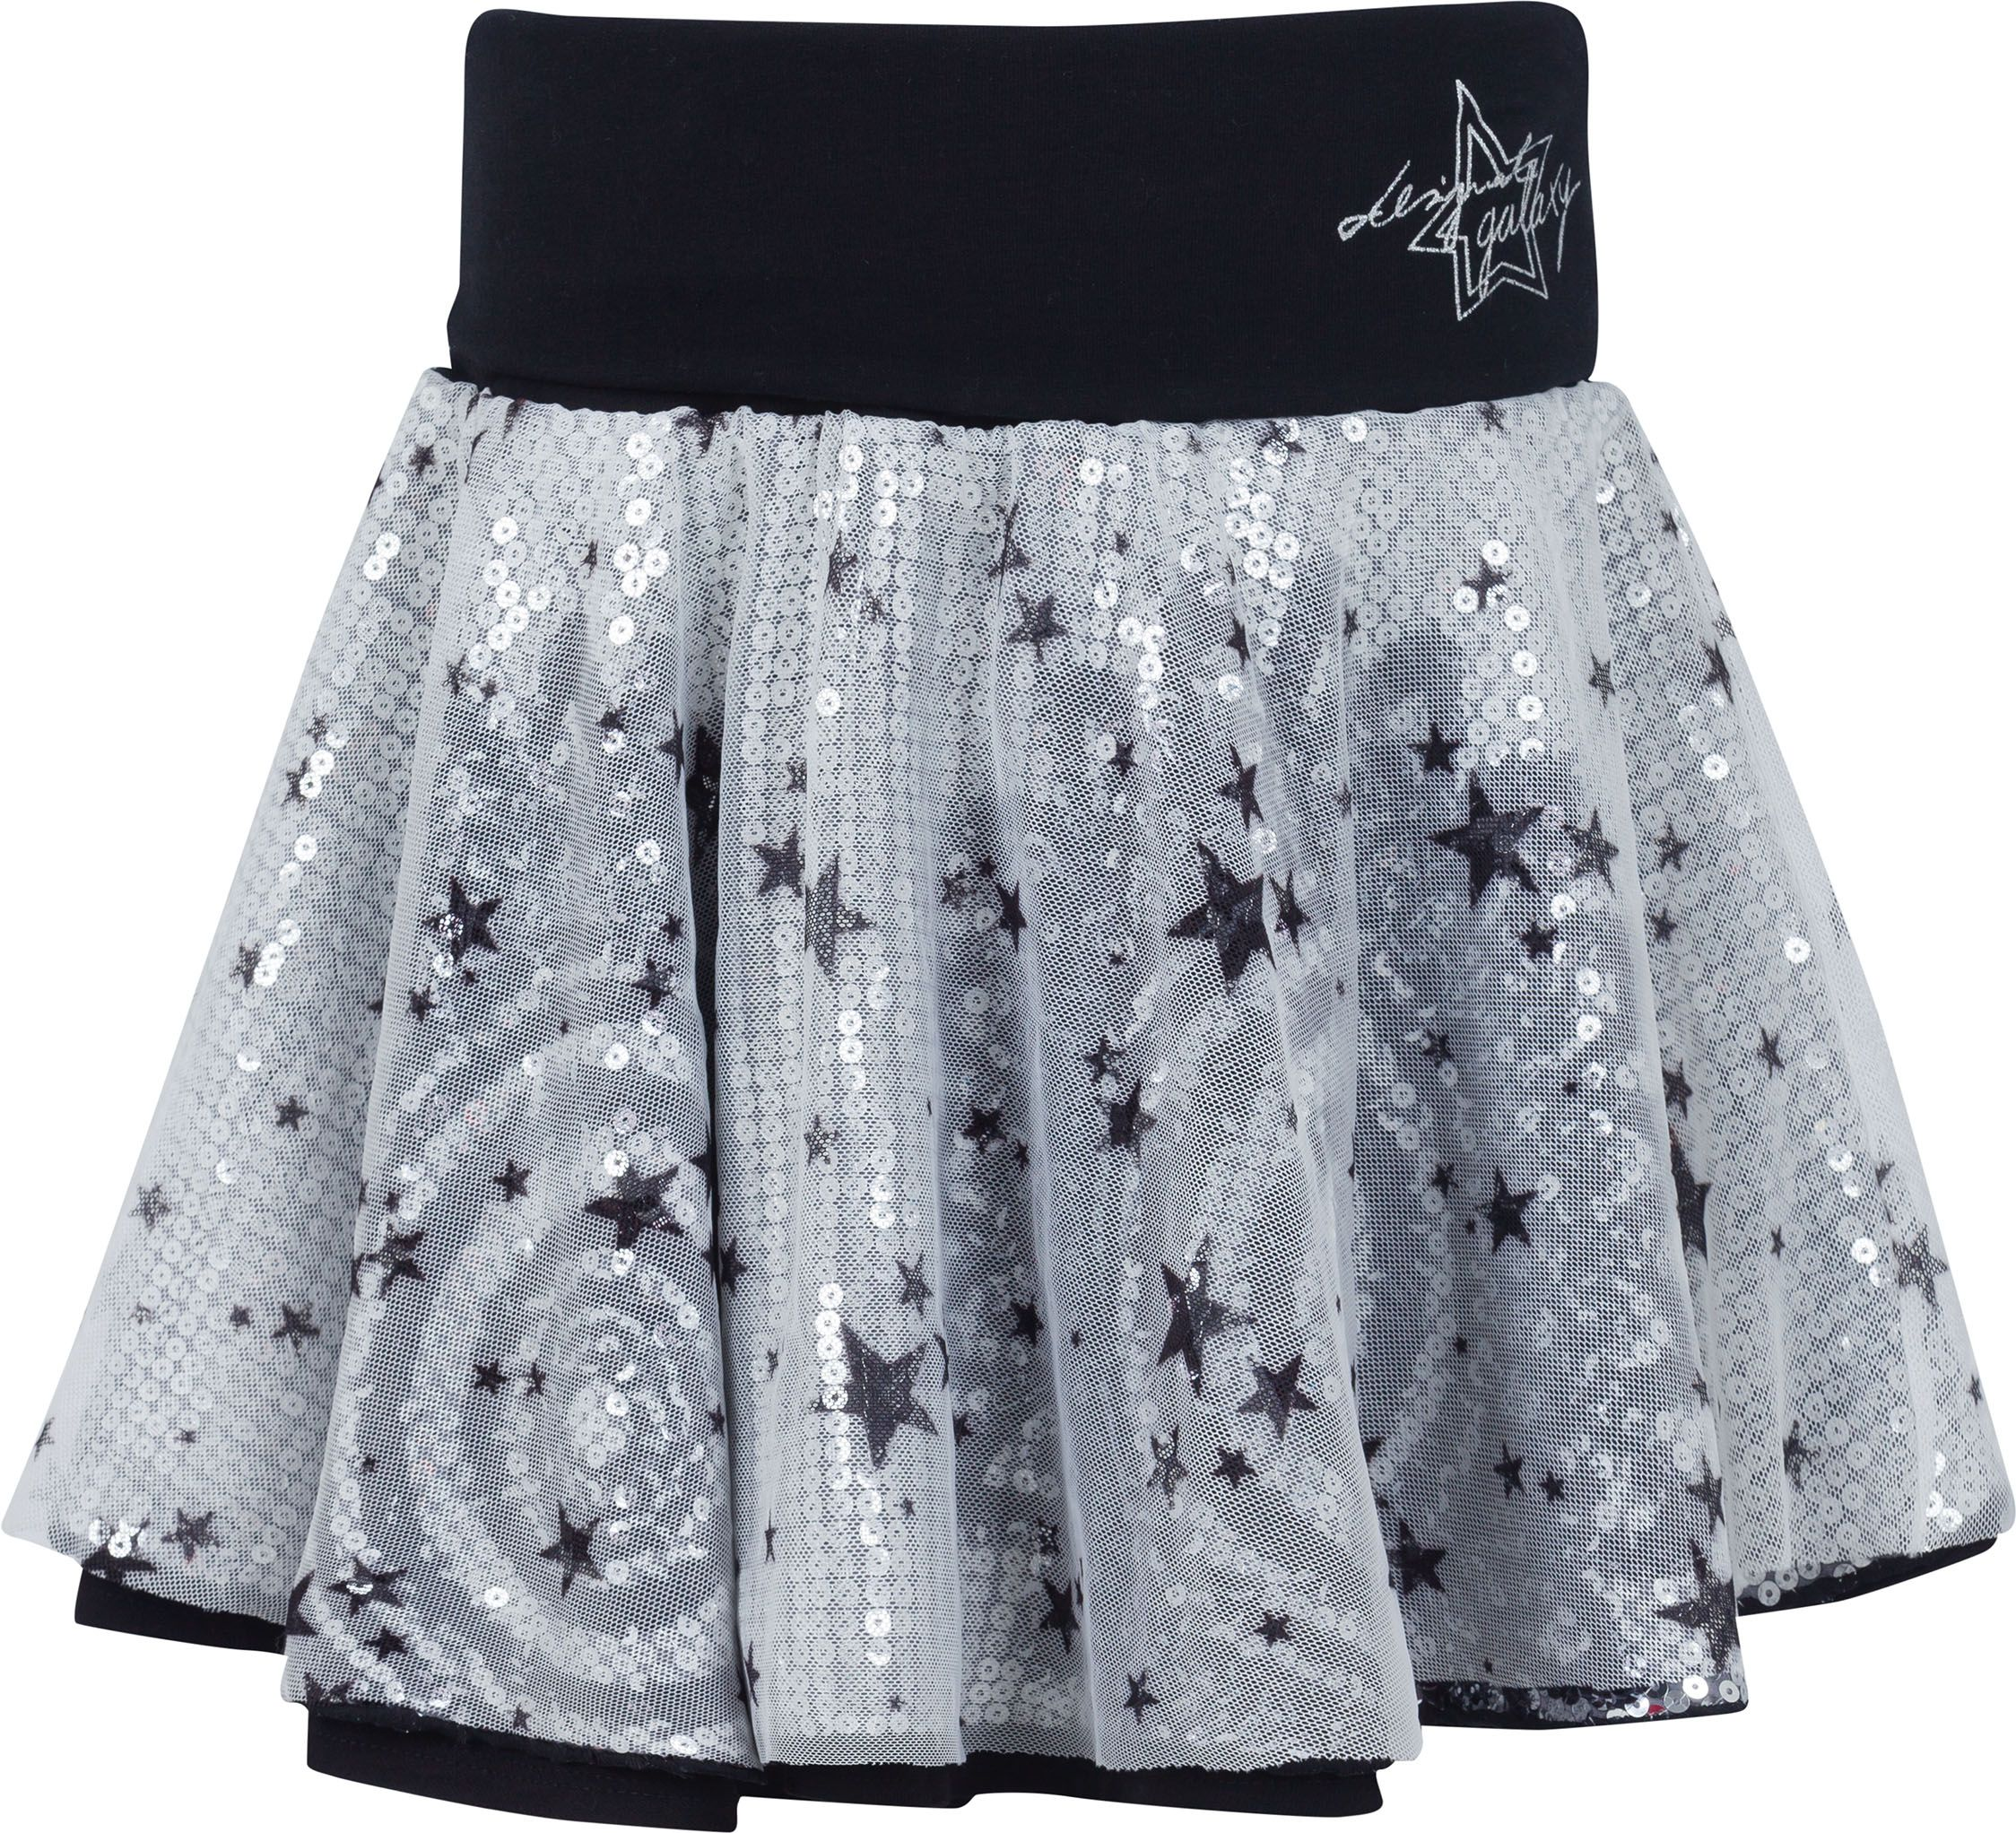 Girls takutea skirt